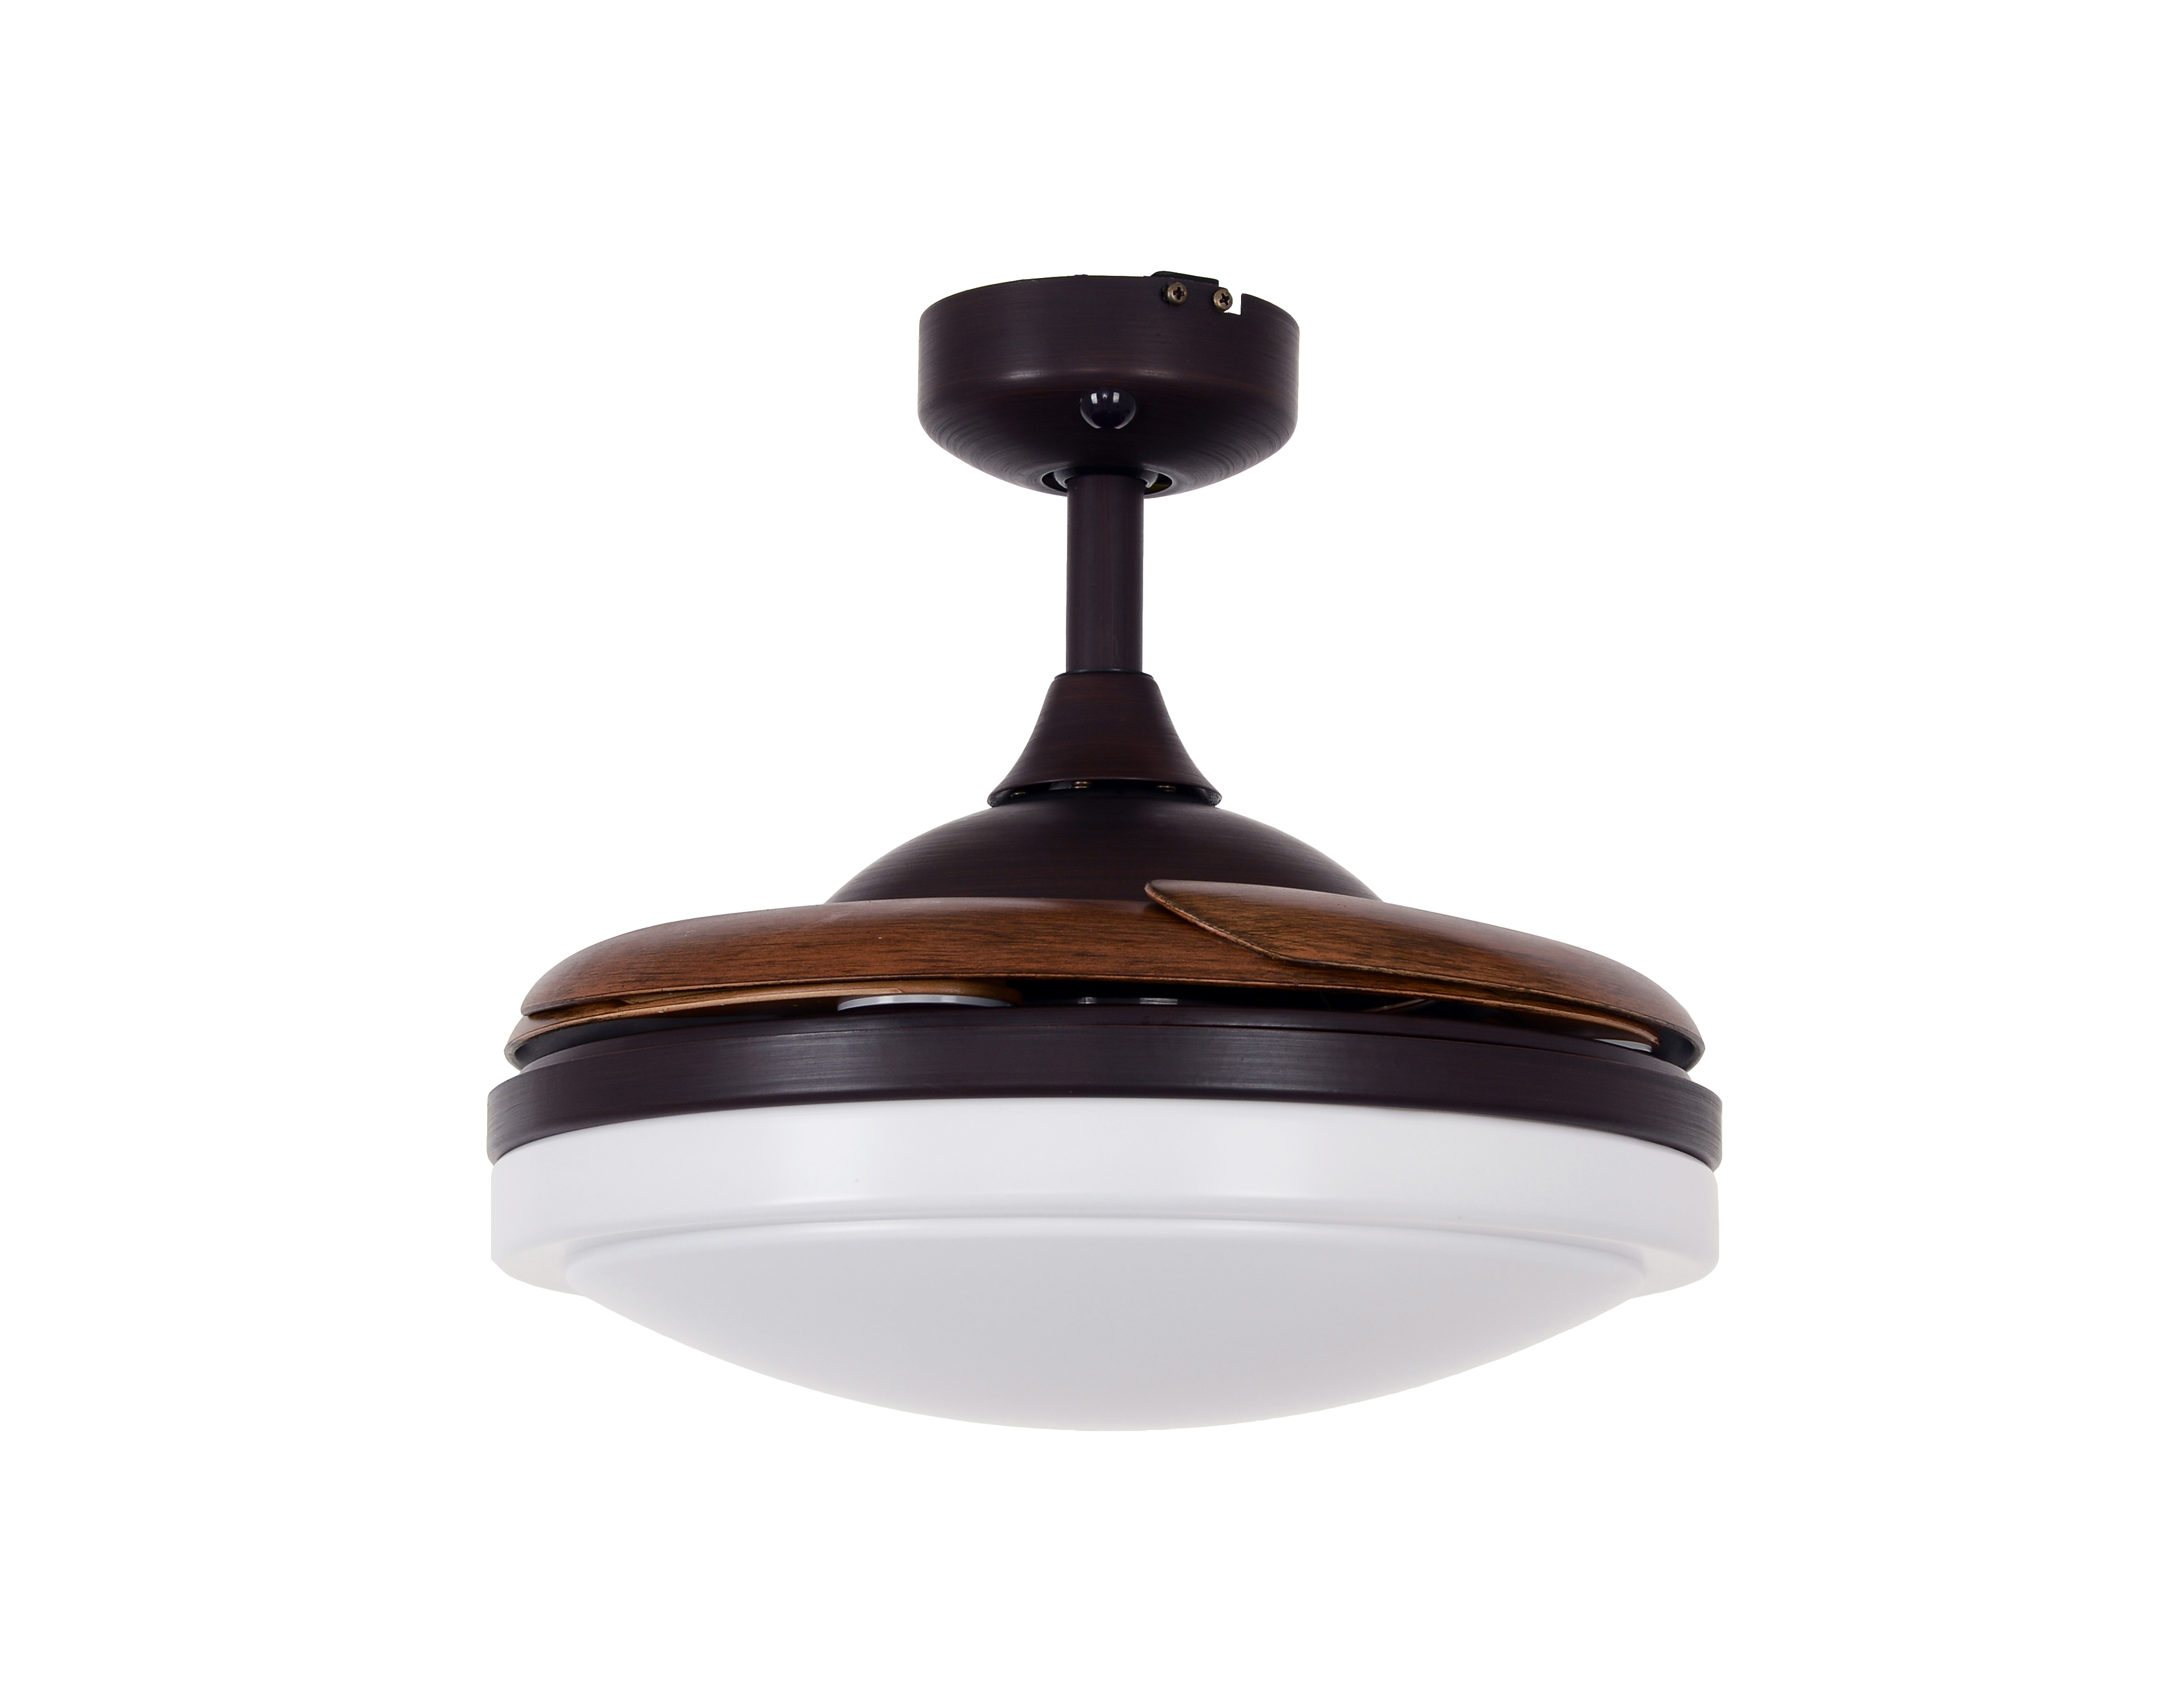 Ceiling Fan Fanaway Evora Bronze With Light And Remote Bild 2